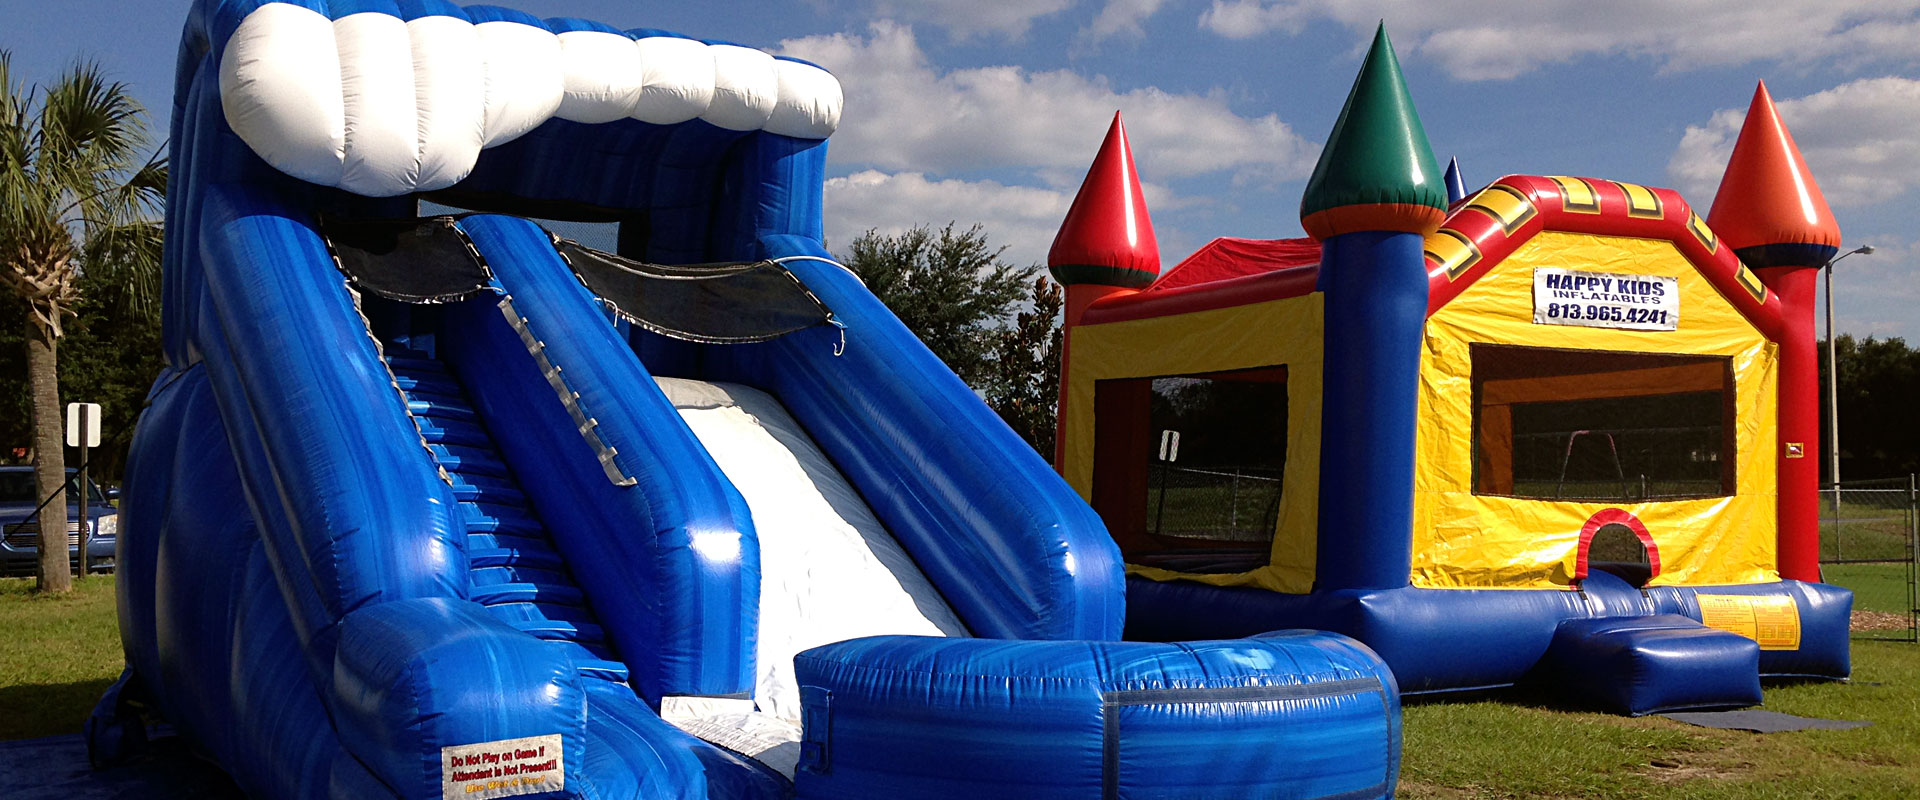 happy-kids-inflatables-slider3